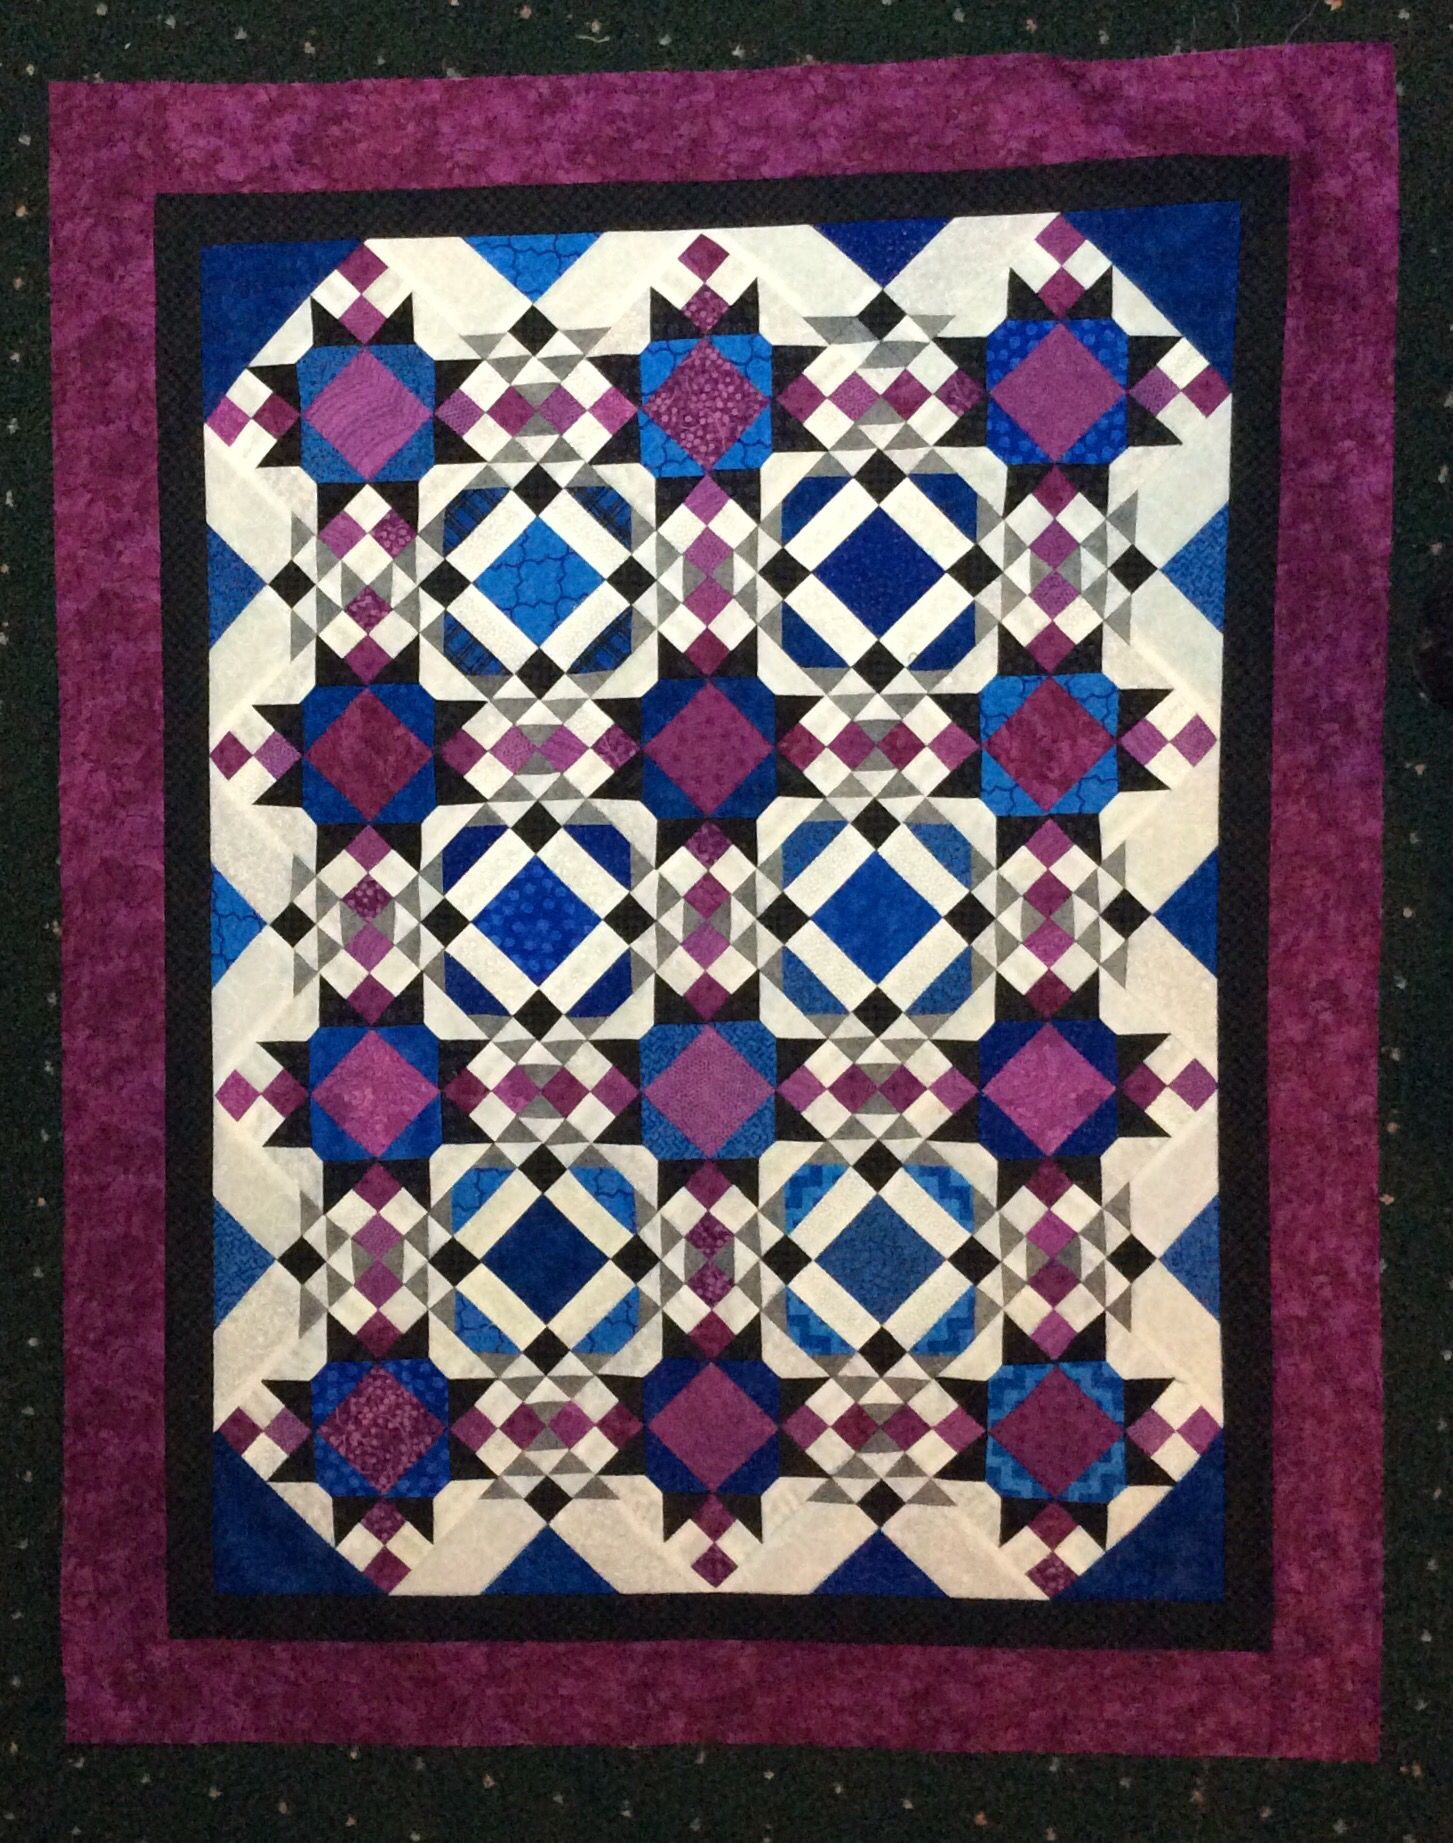 Allitare Mini Mystery Quilt Pattern By Bonnie Hunter Quilts Mystery Quilt Quilt Patterns